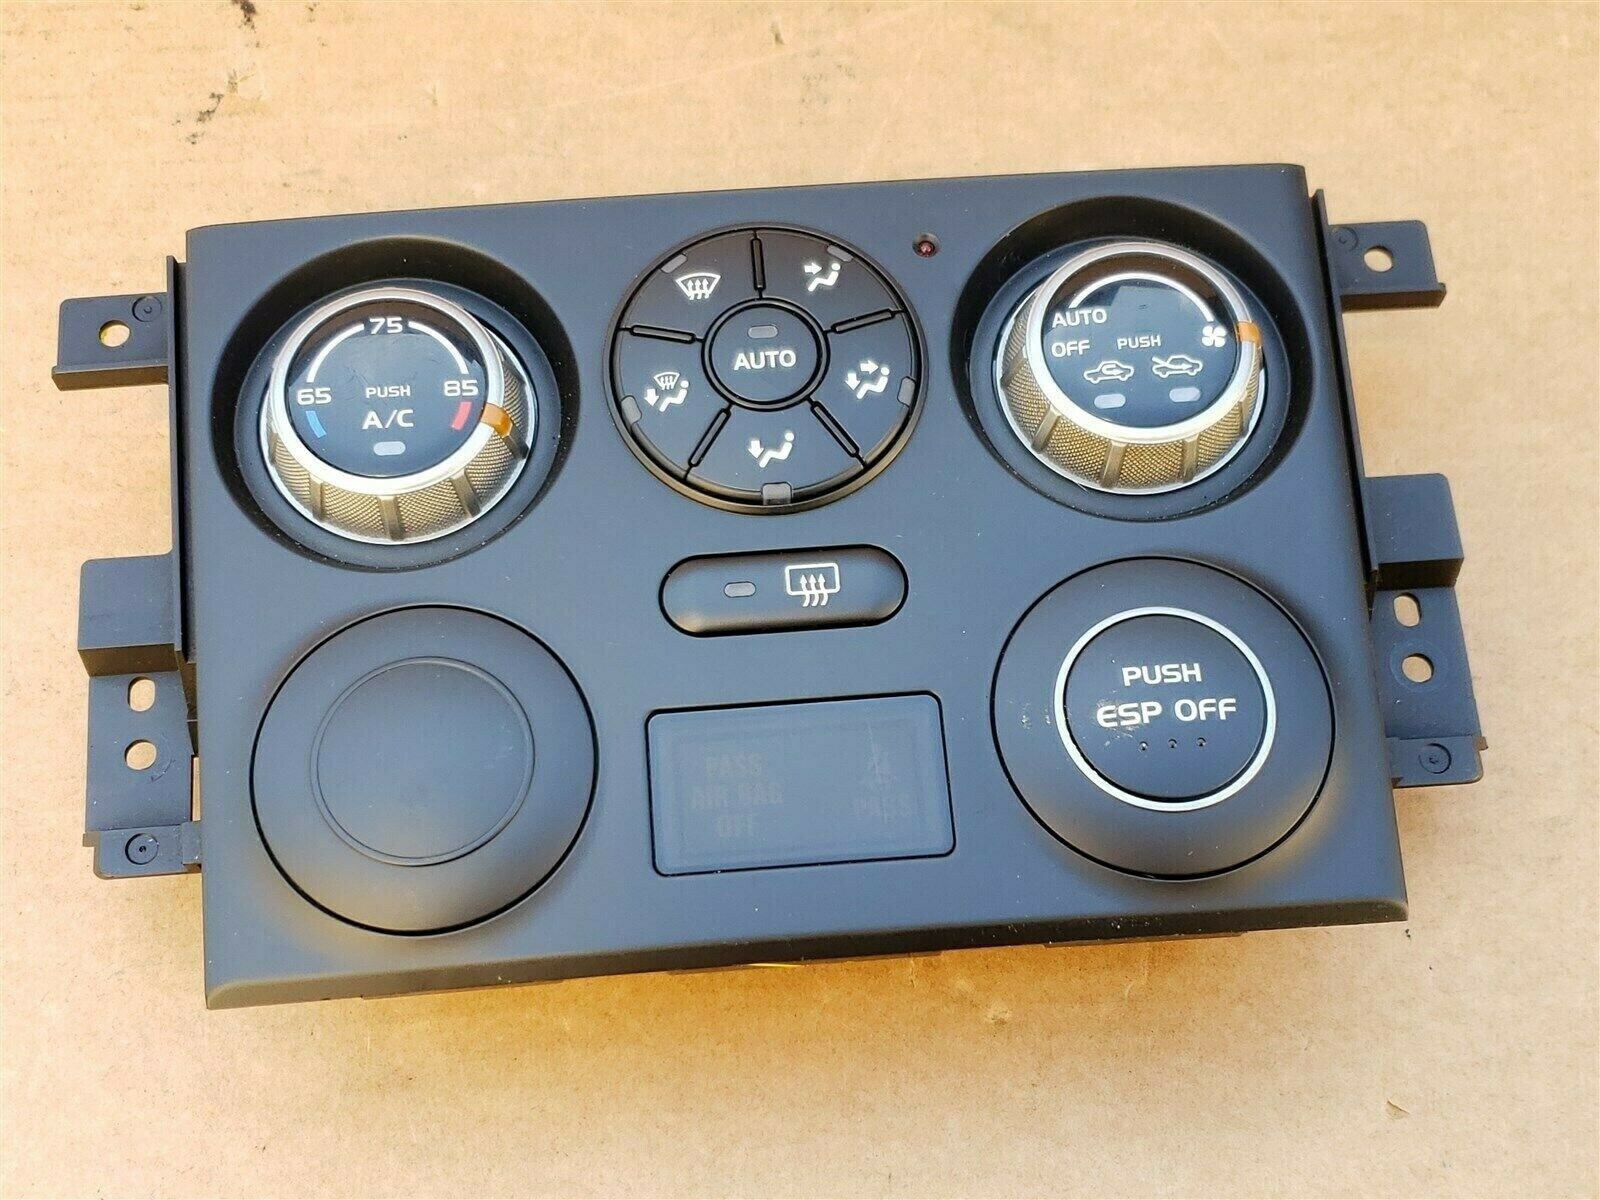 06 Suzuki Grand Vitara Air AC Heater Climate Control Panel 39510-65J23-CAT